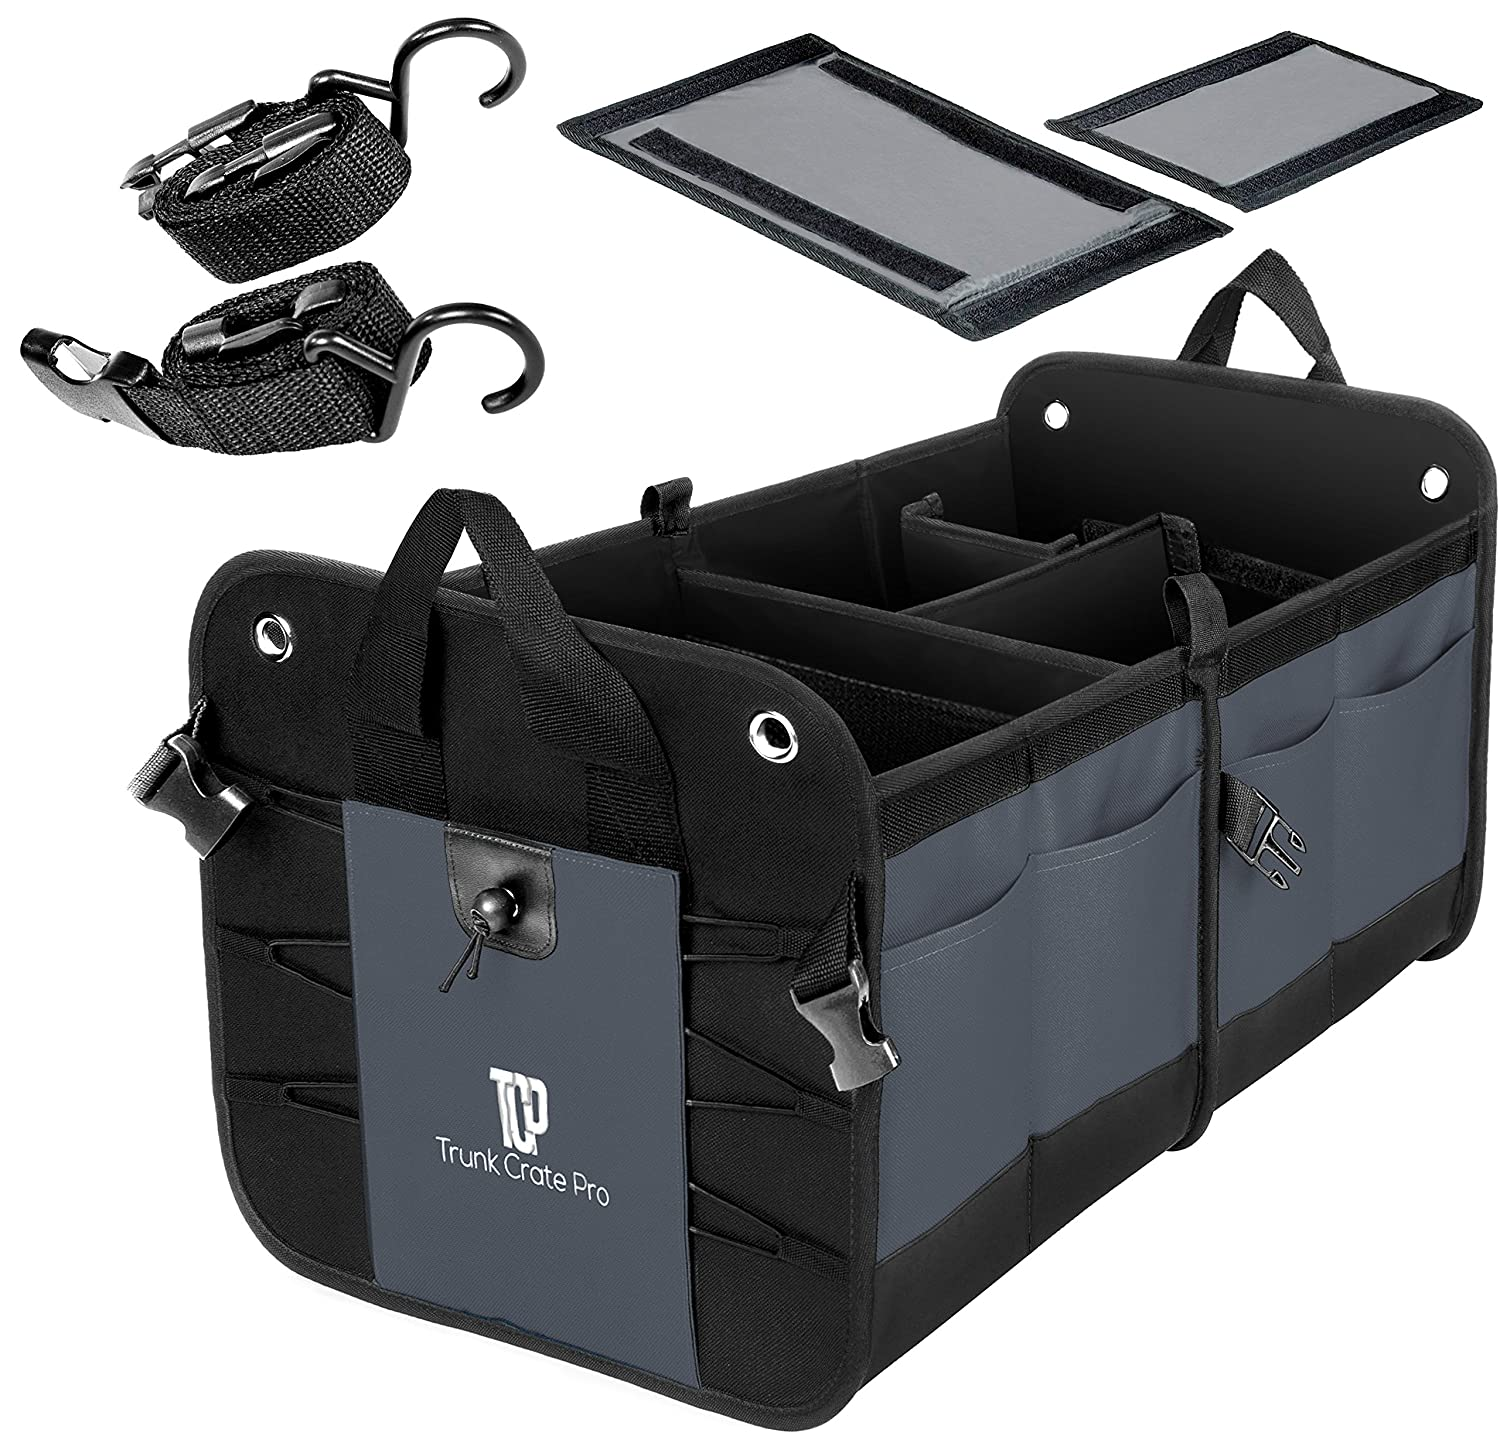 TRUNKCRATEPRO Premium Multi Compartments Collapsible Portable Trunk Organizer - photo